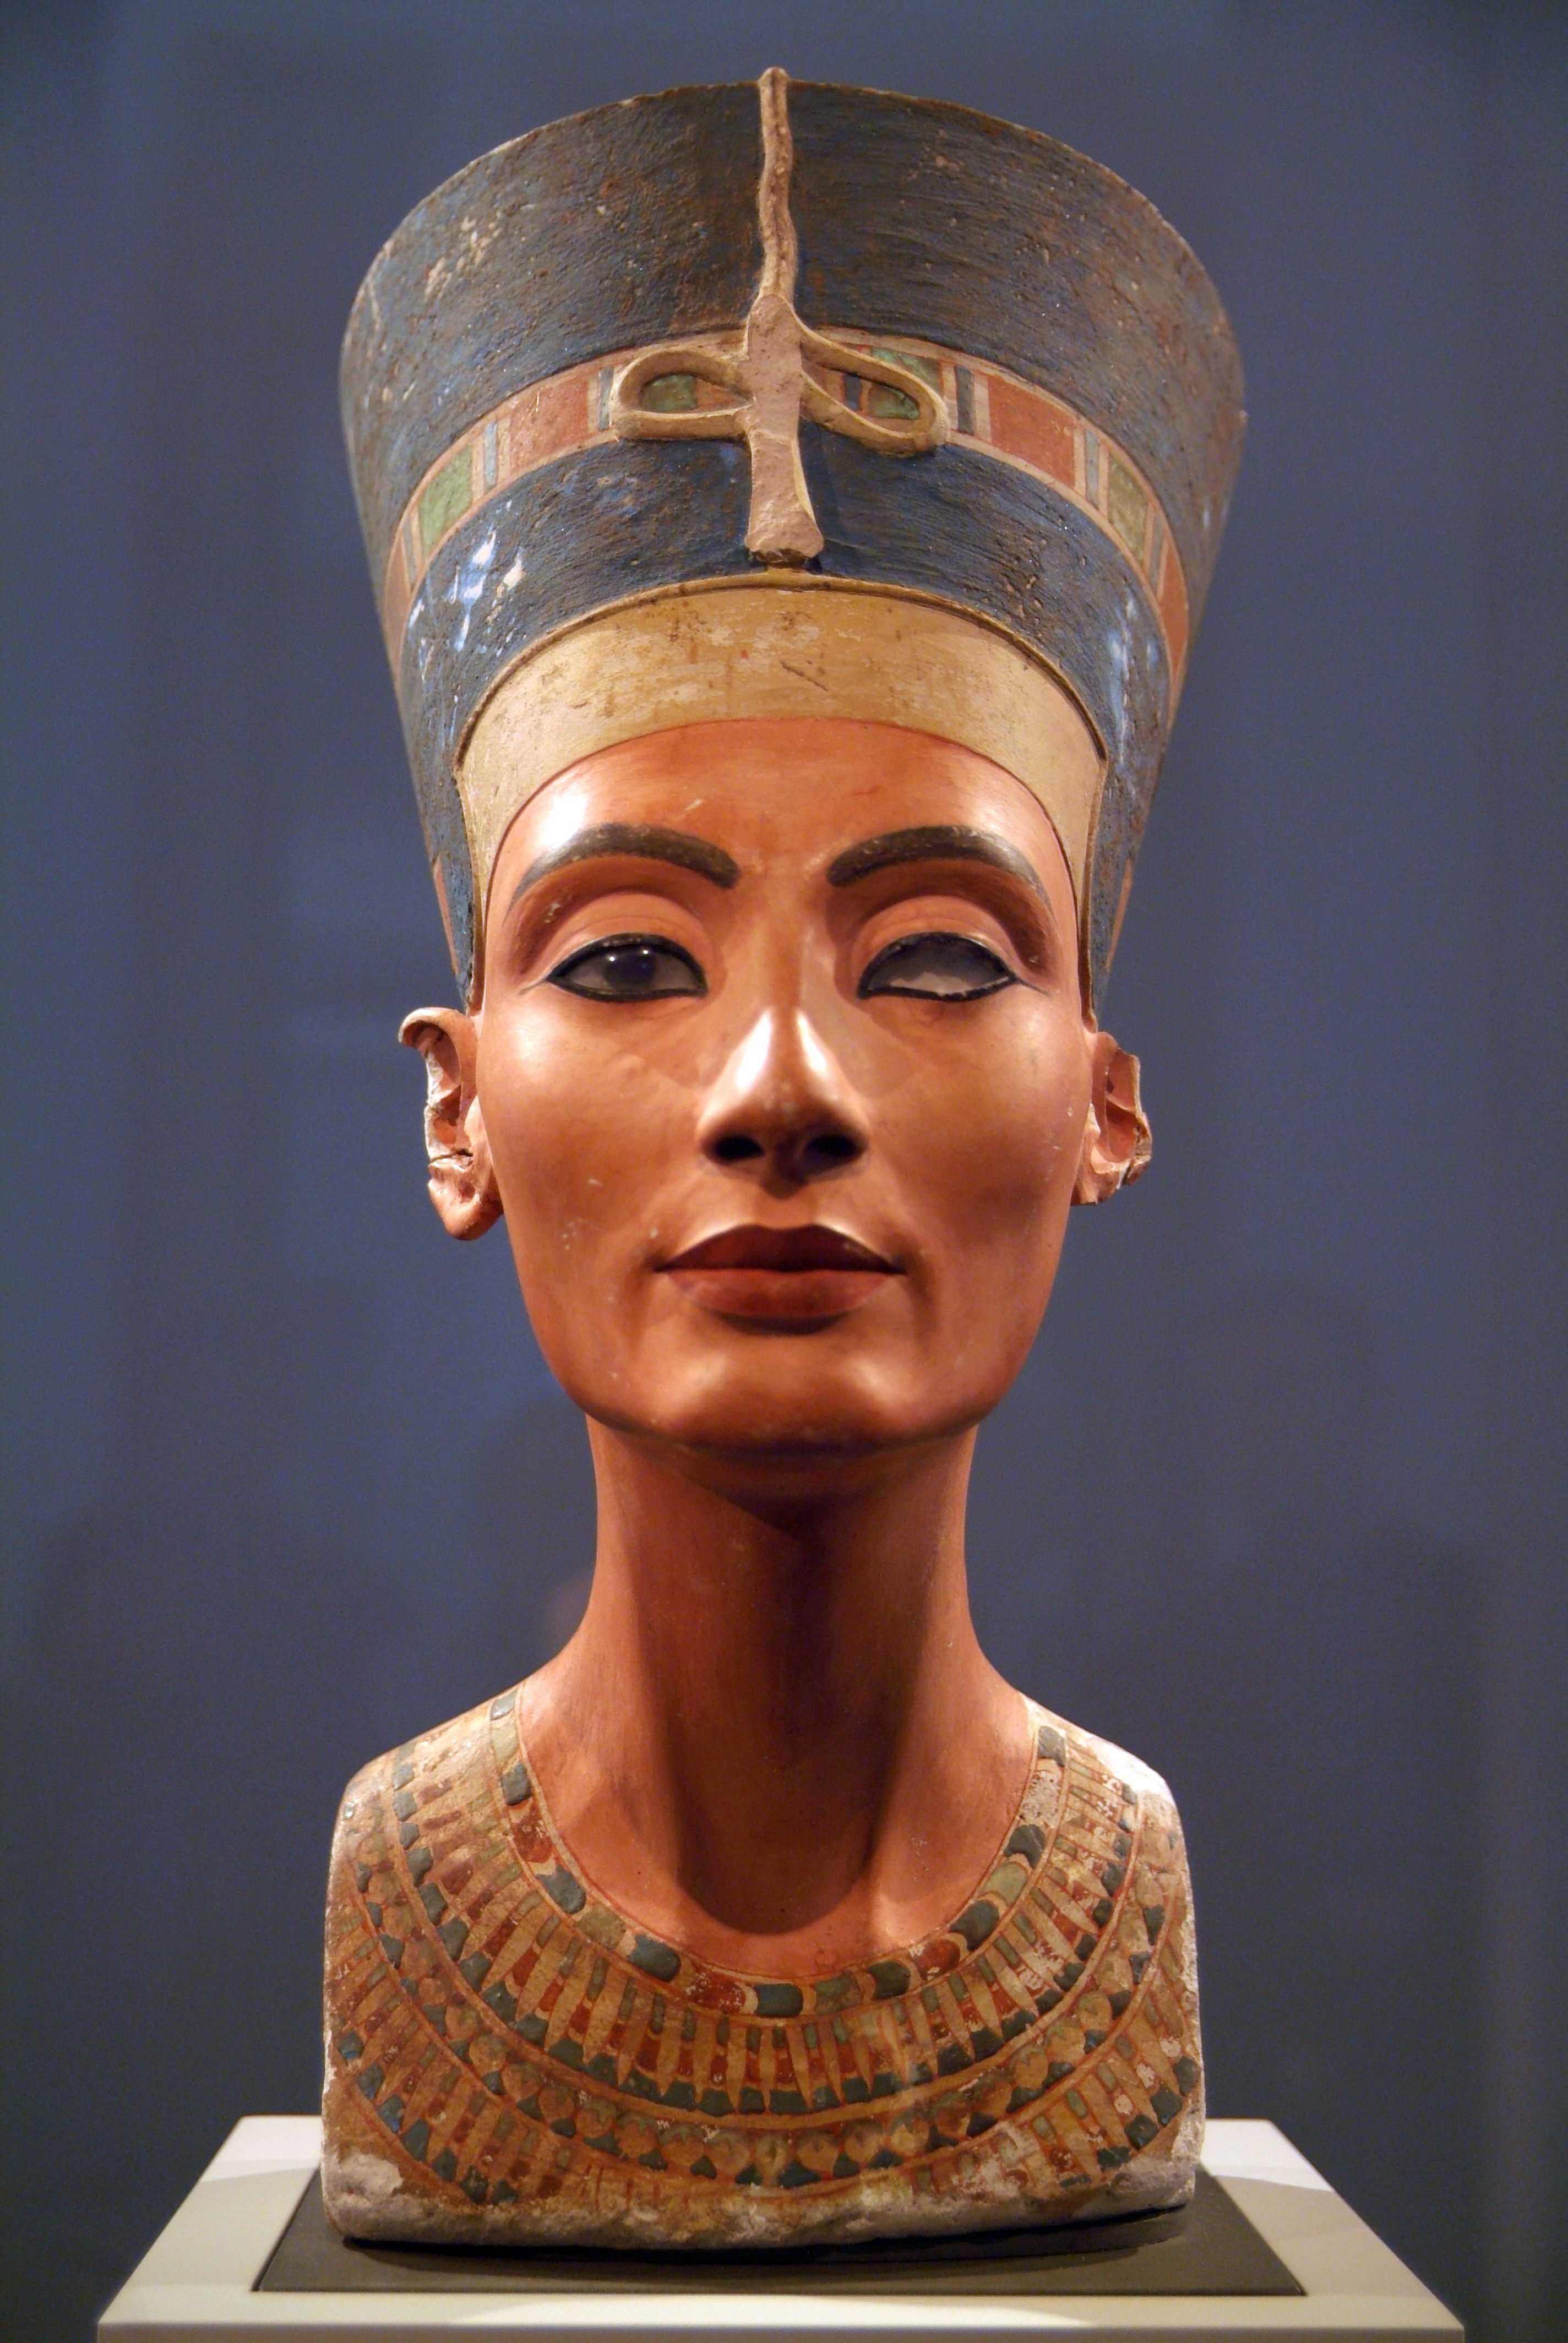 Bust of Nefertiti at the Neues Museum in Berlin, Germany. View from the front showing the missing eye. Photo taken on April 17, 2008.